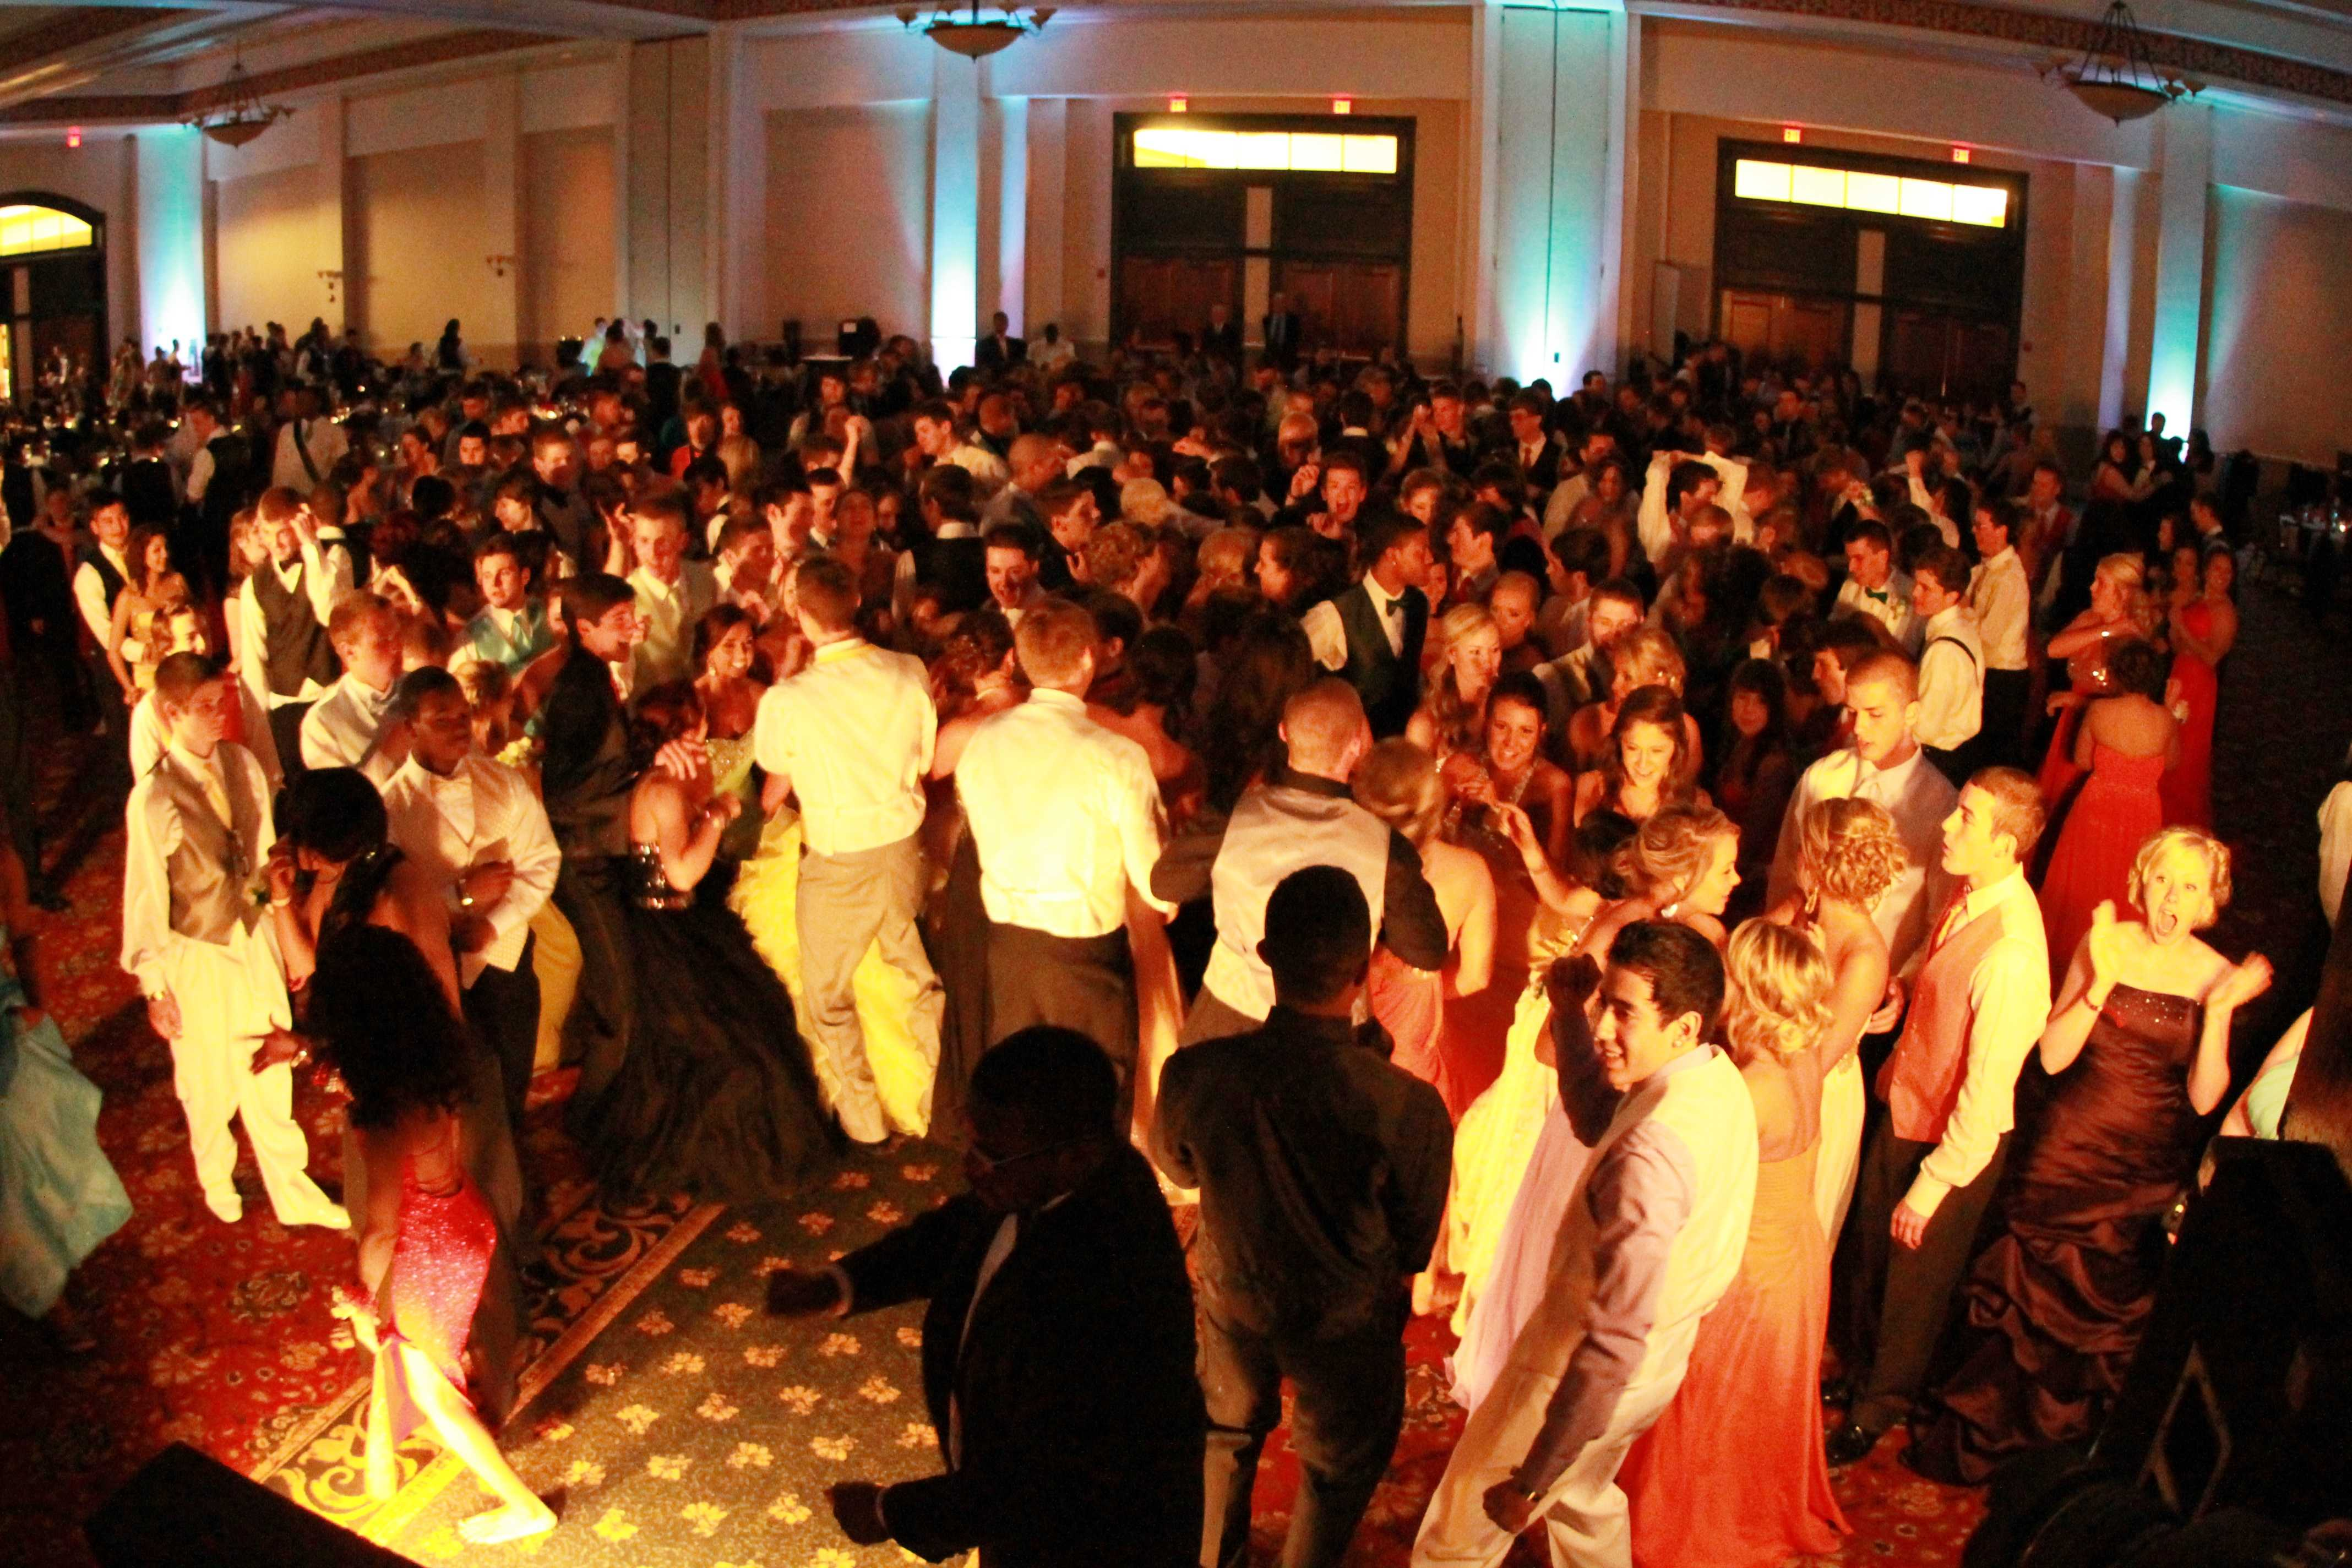 prom nite planning Free prom planner   a prom planning timeline tips on forming your prom committee  connect with prom nite to find unique content,.